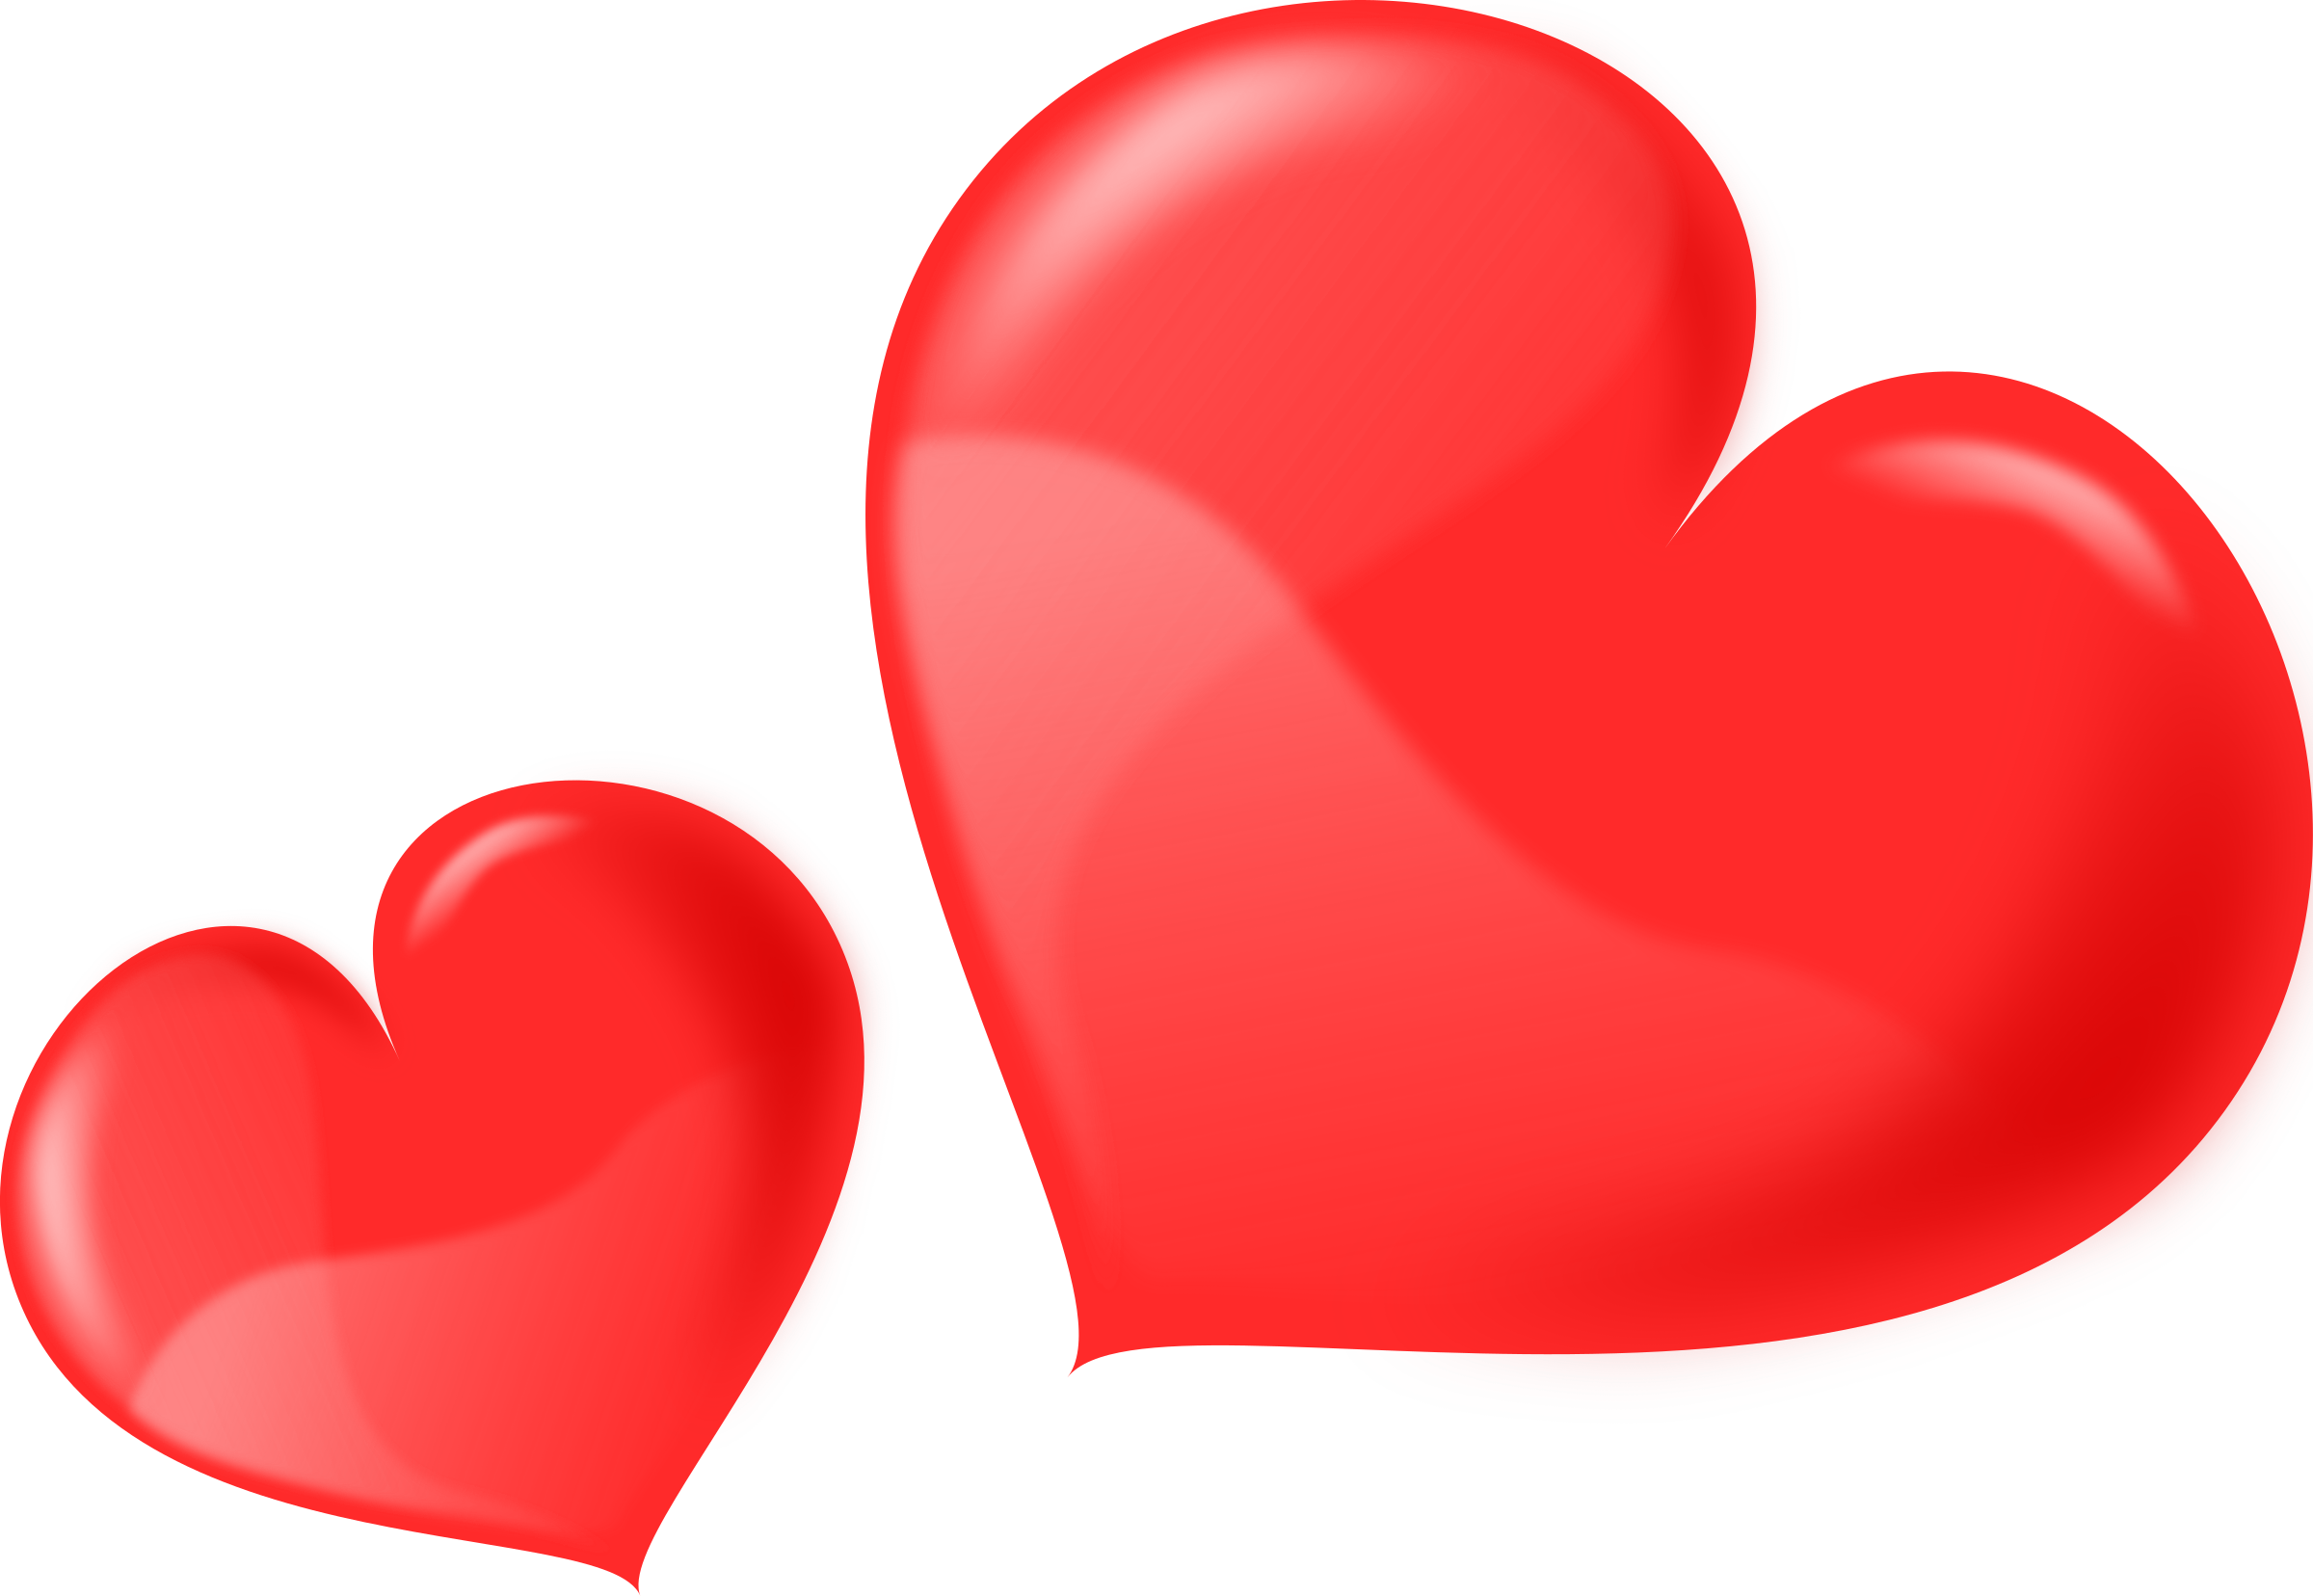 Heart glossy two icons. Hearts vector png